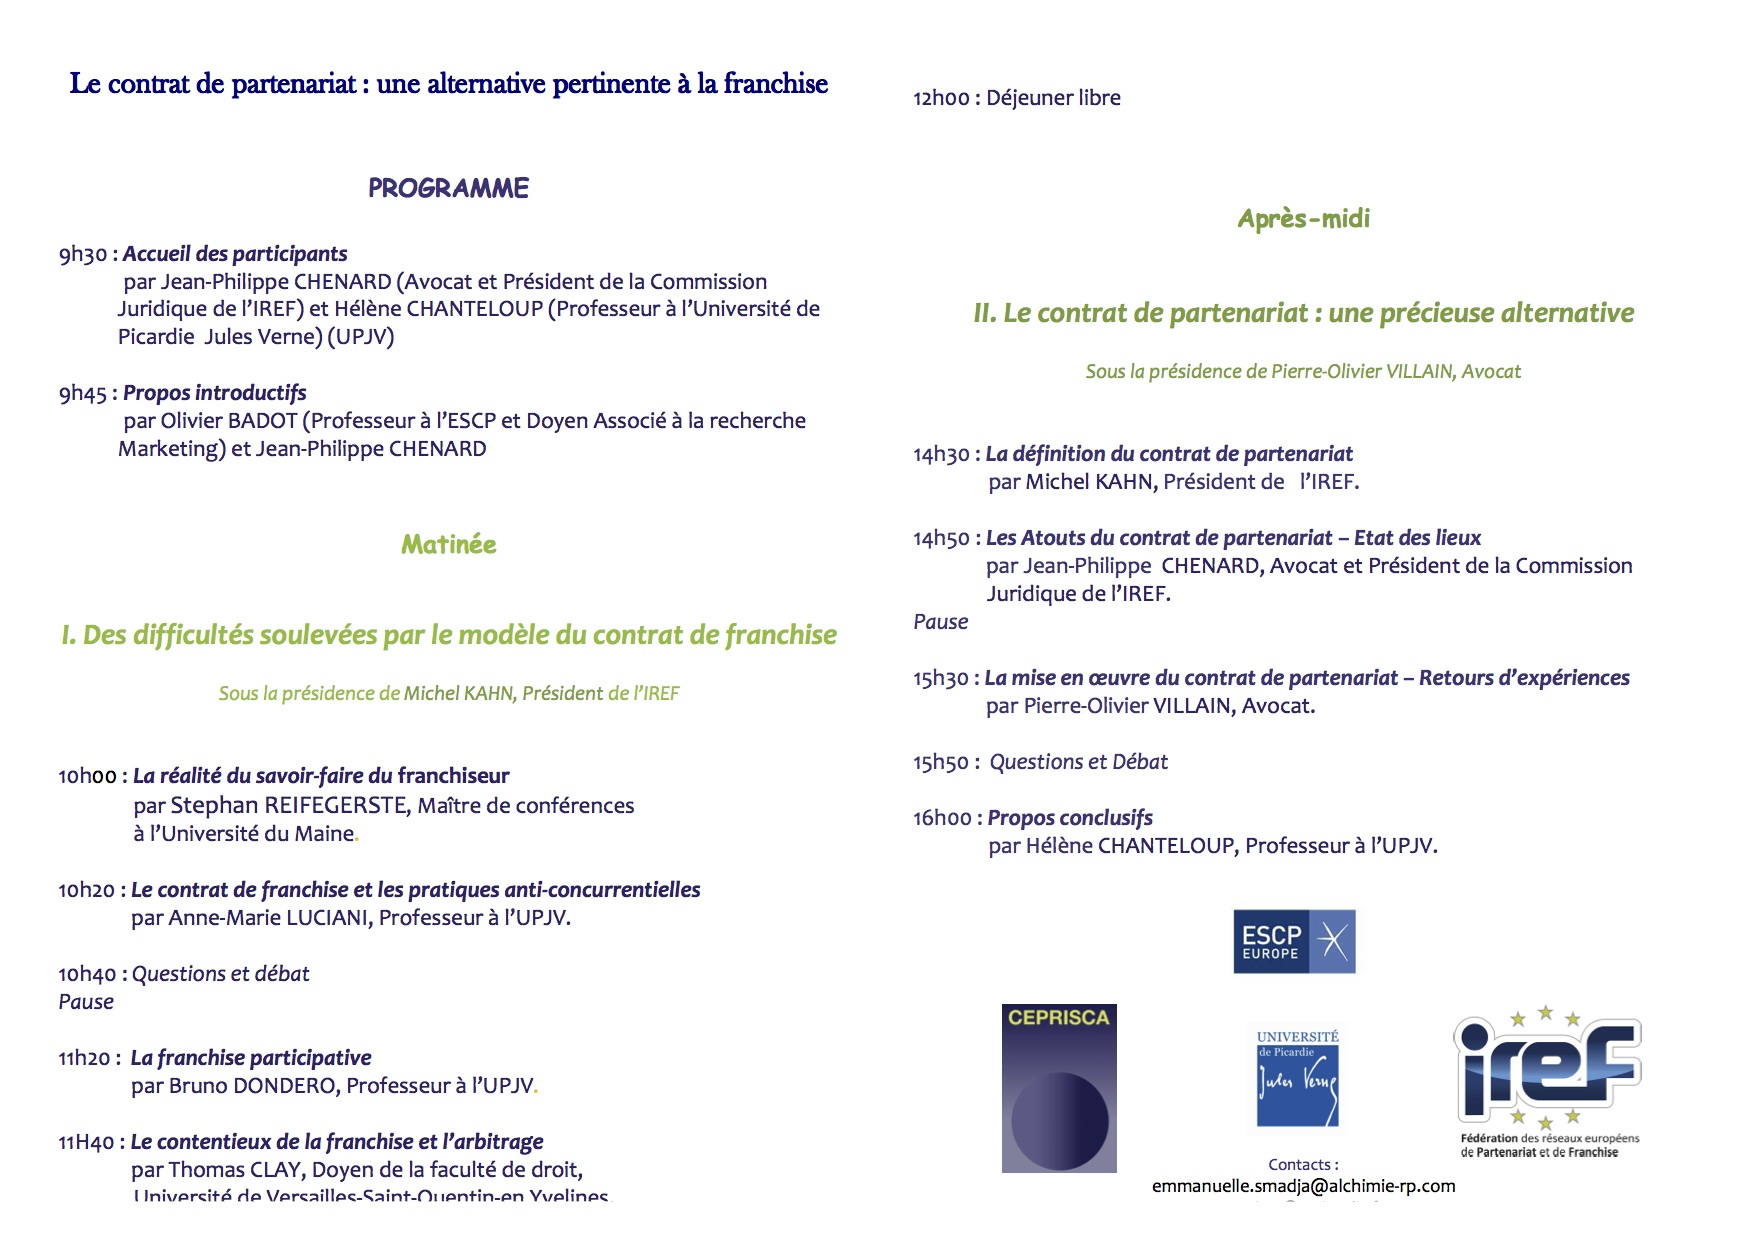 PROGRAMME_Le_contrat_de_partenariat-une_alternative_pertinente_a_la_franchise-12DEC11-